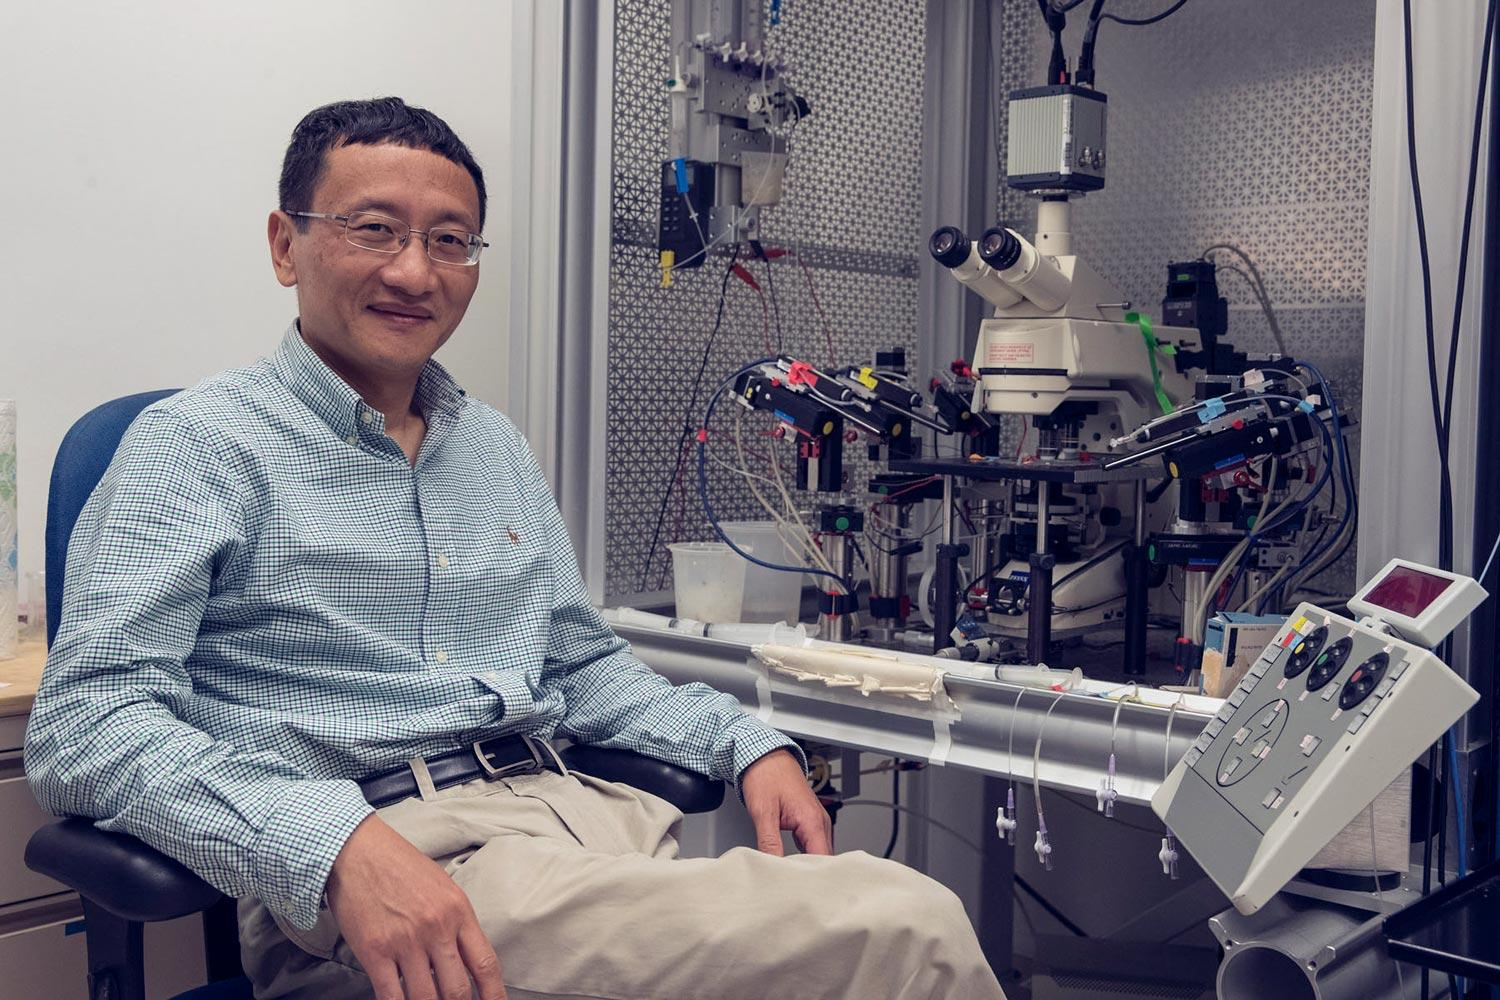 UVA pharmacology researcher J. Julius Zhu and colleagues have pioneered a new technique to visualize cell communication within the brain.